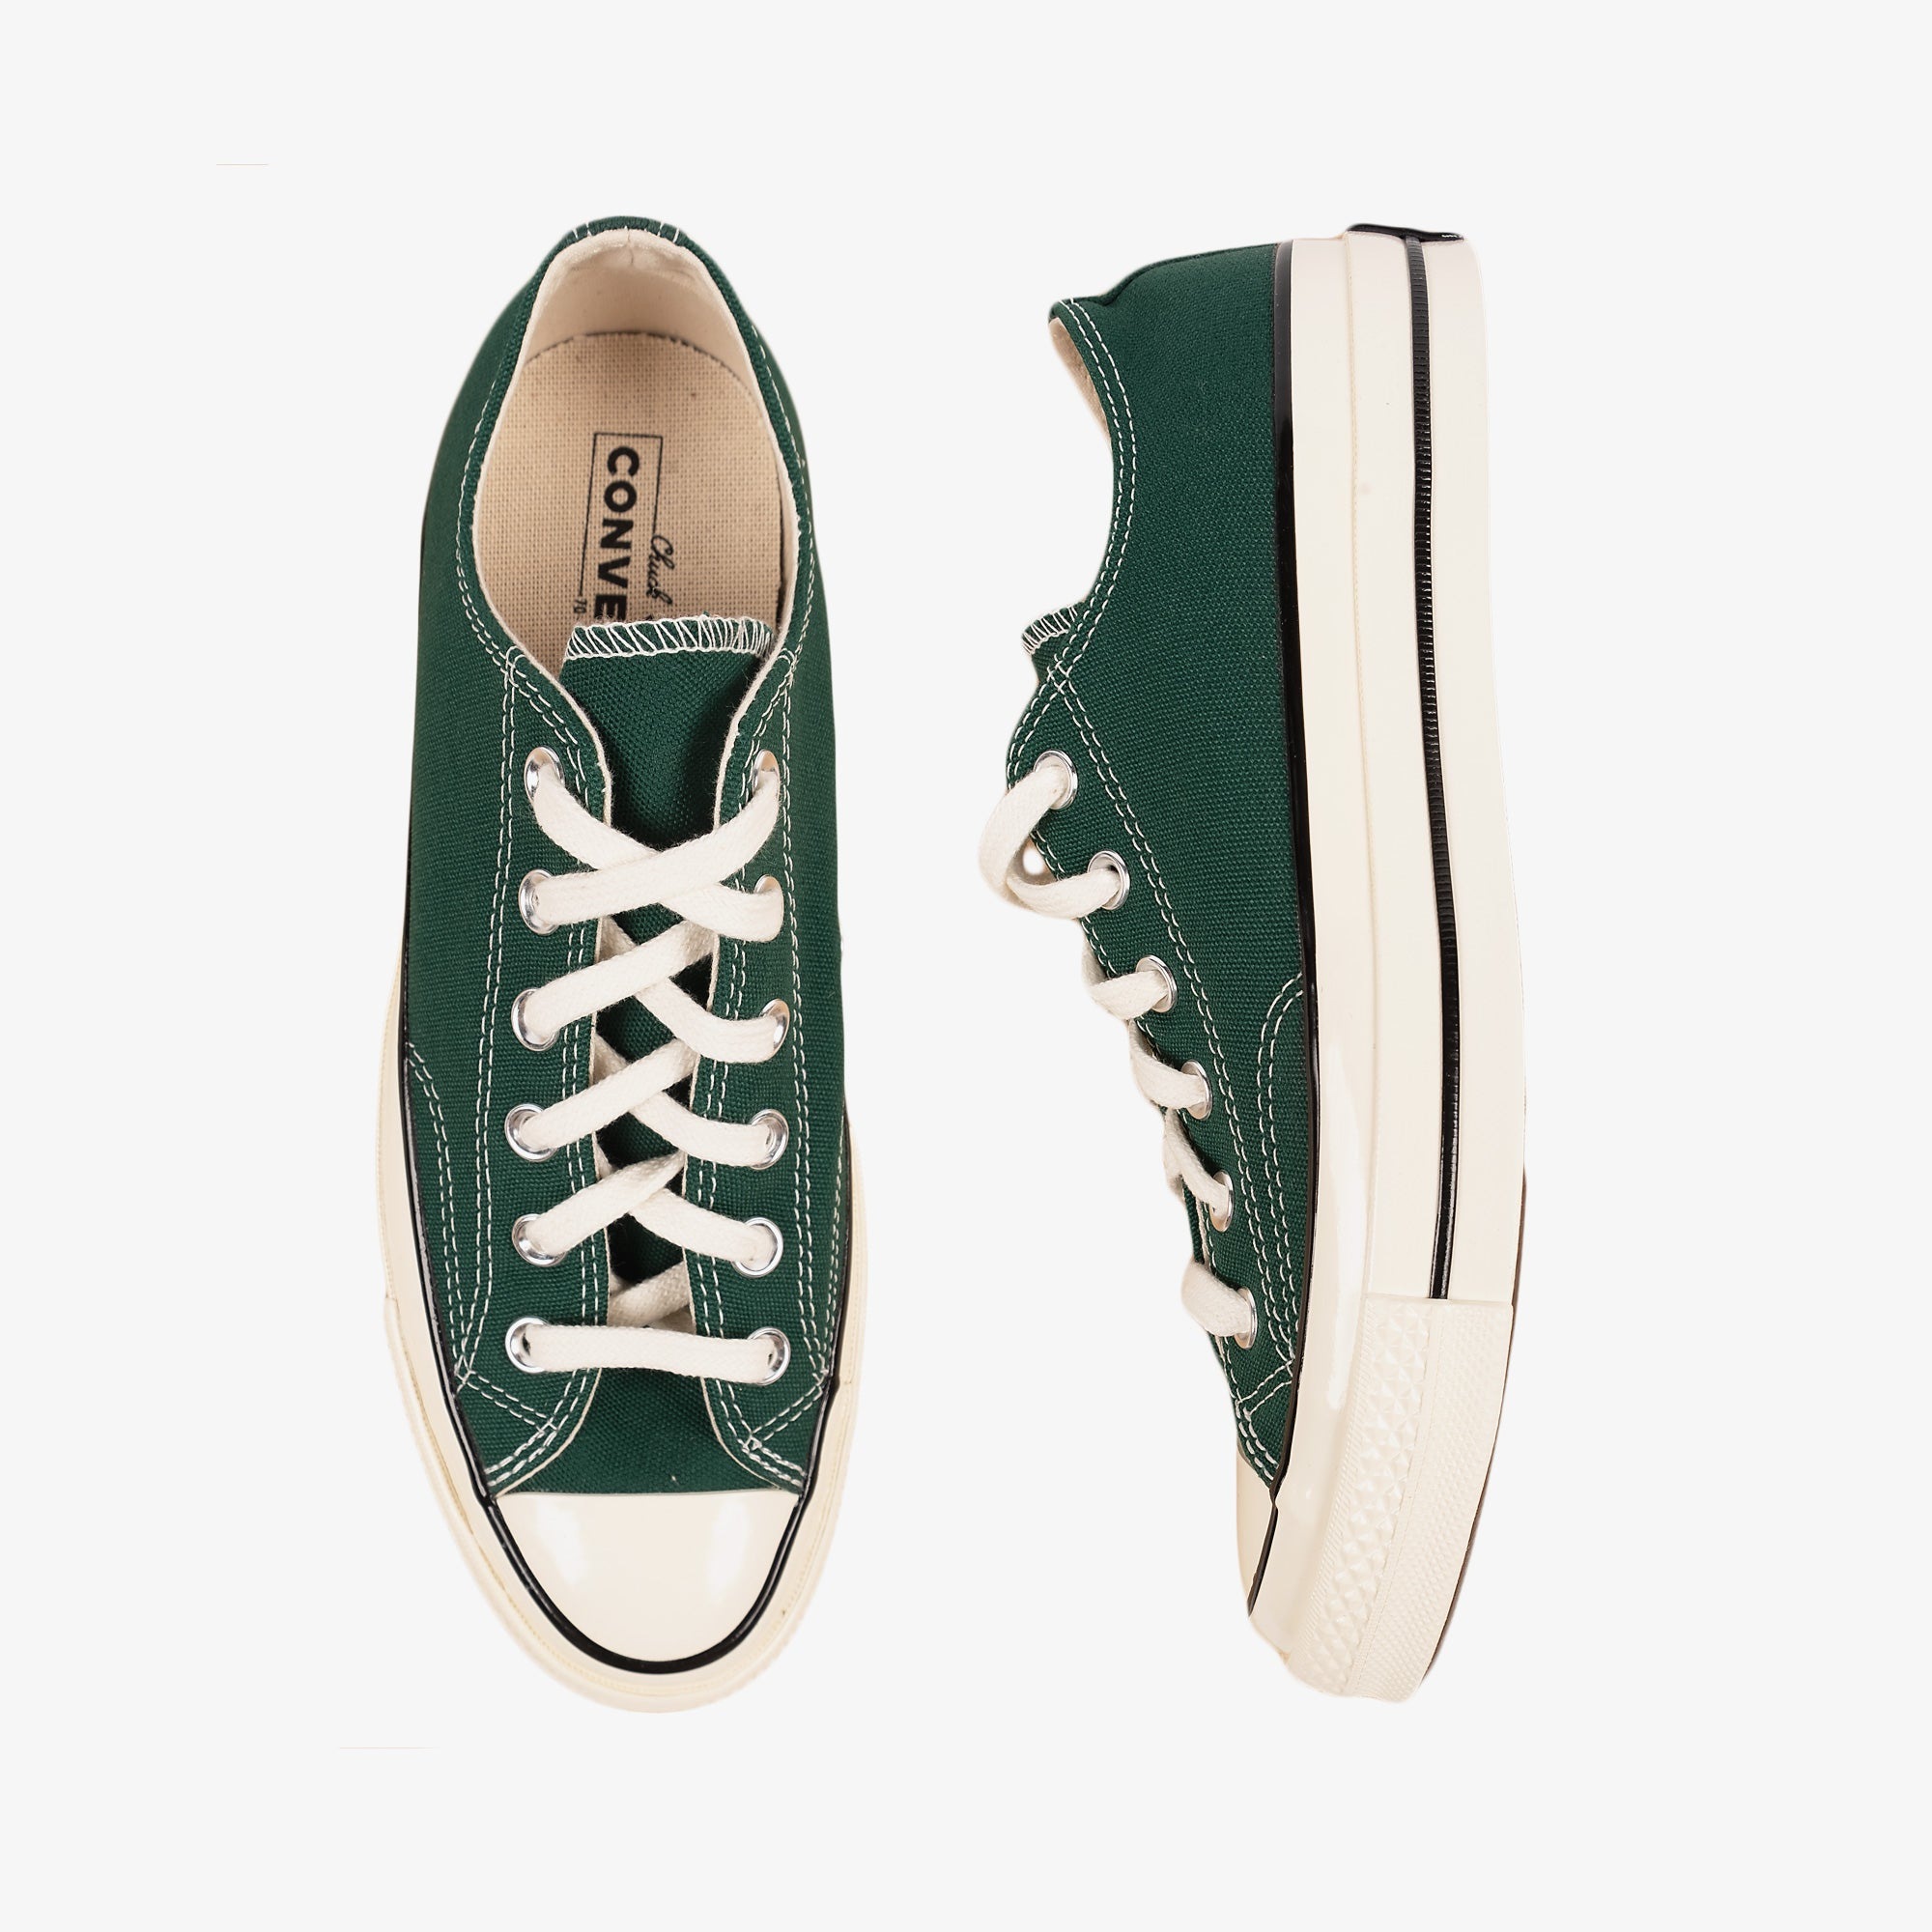 Converse Chuck Taylor 70 Low - Midnight Clover 1